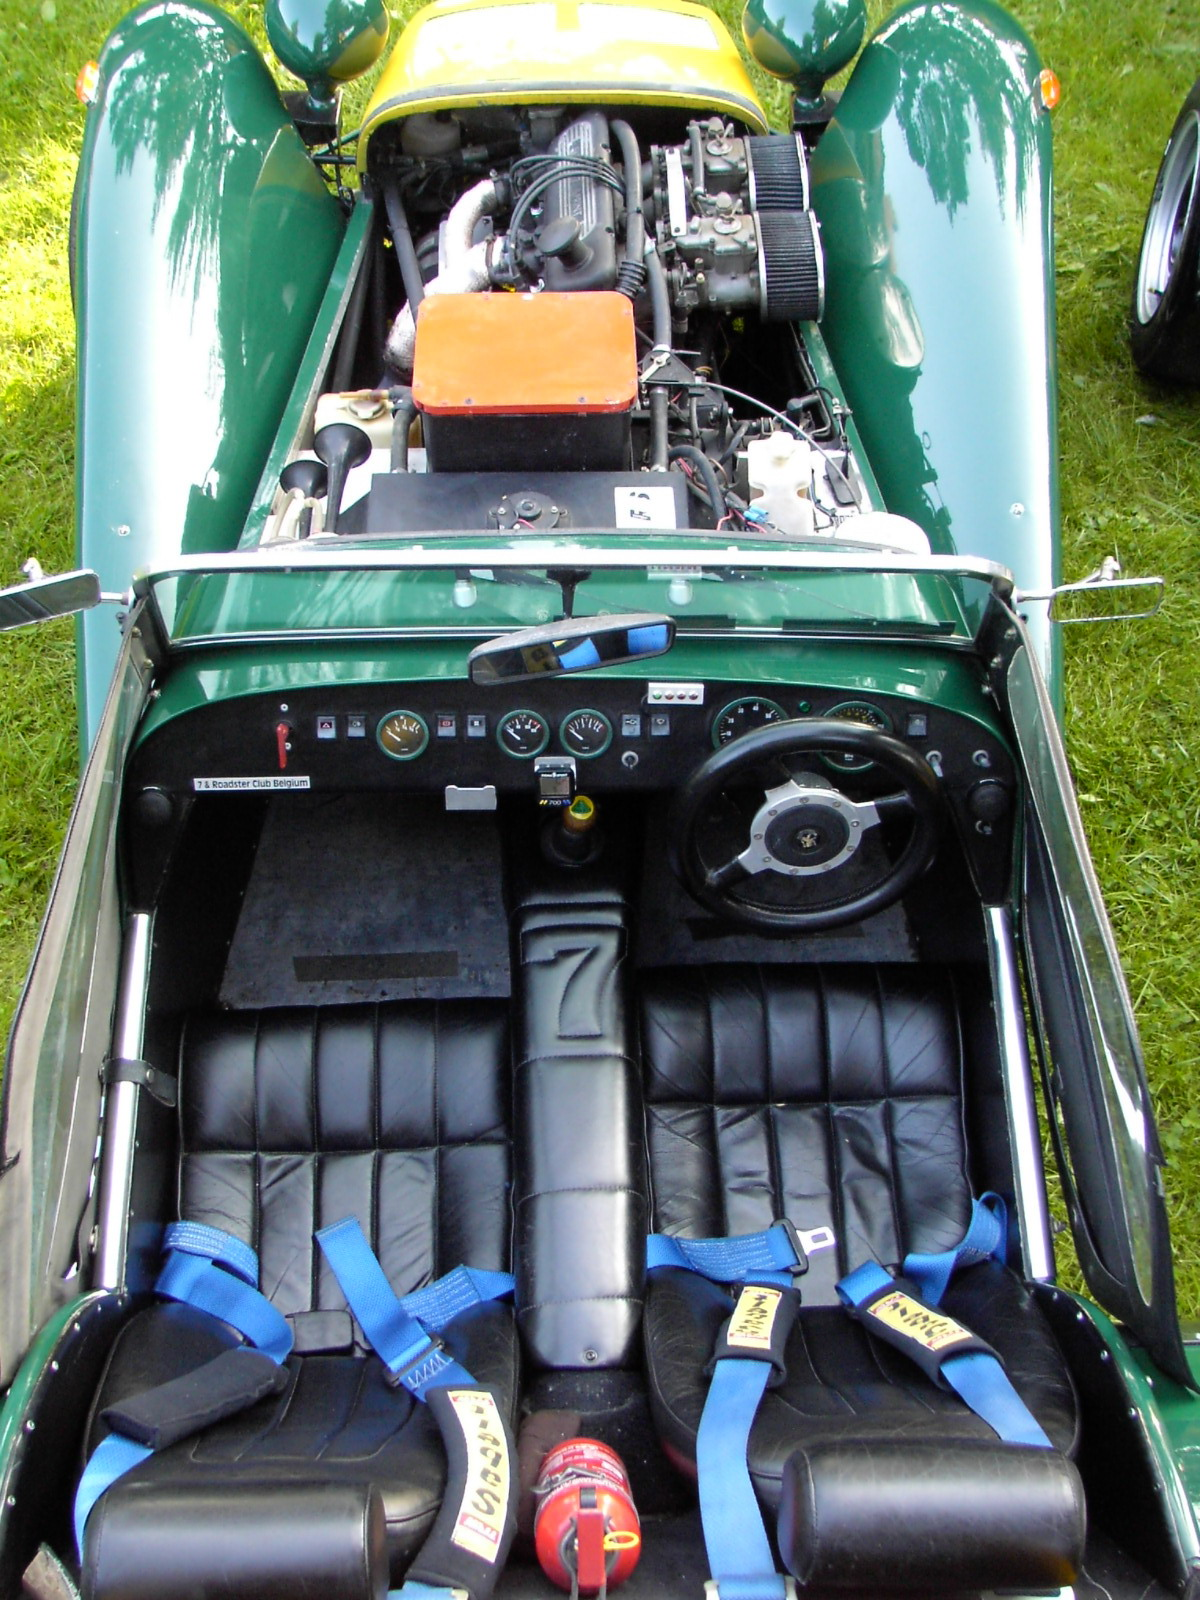 Lotus SIII rear inside